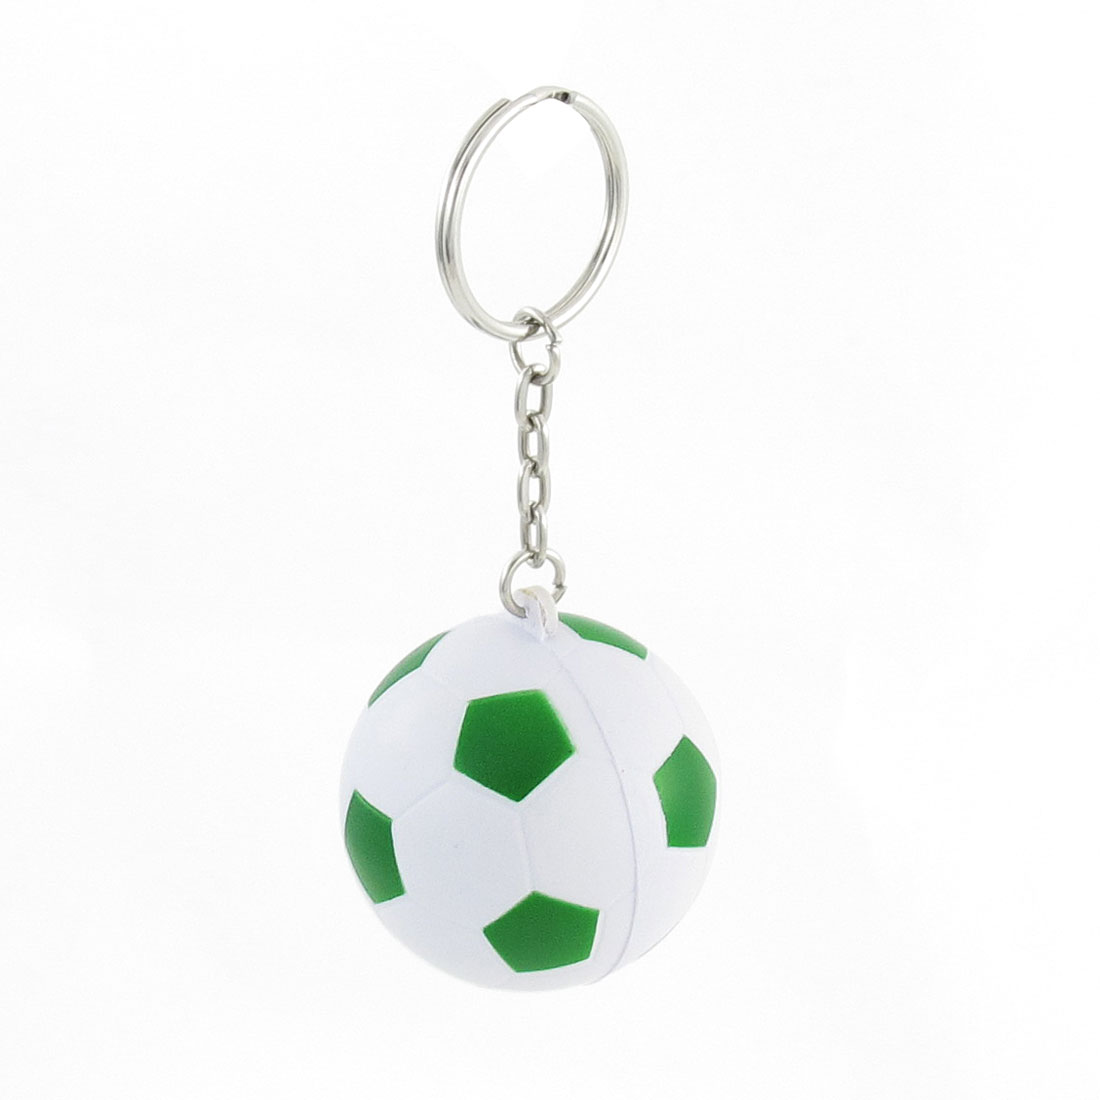 Green White Football Shape Sport Stress Ball Key Ring Phone Decor